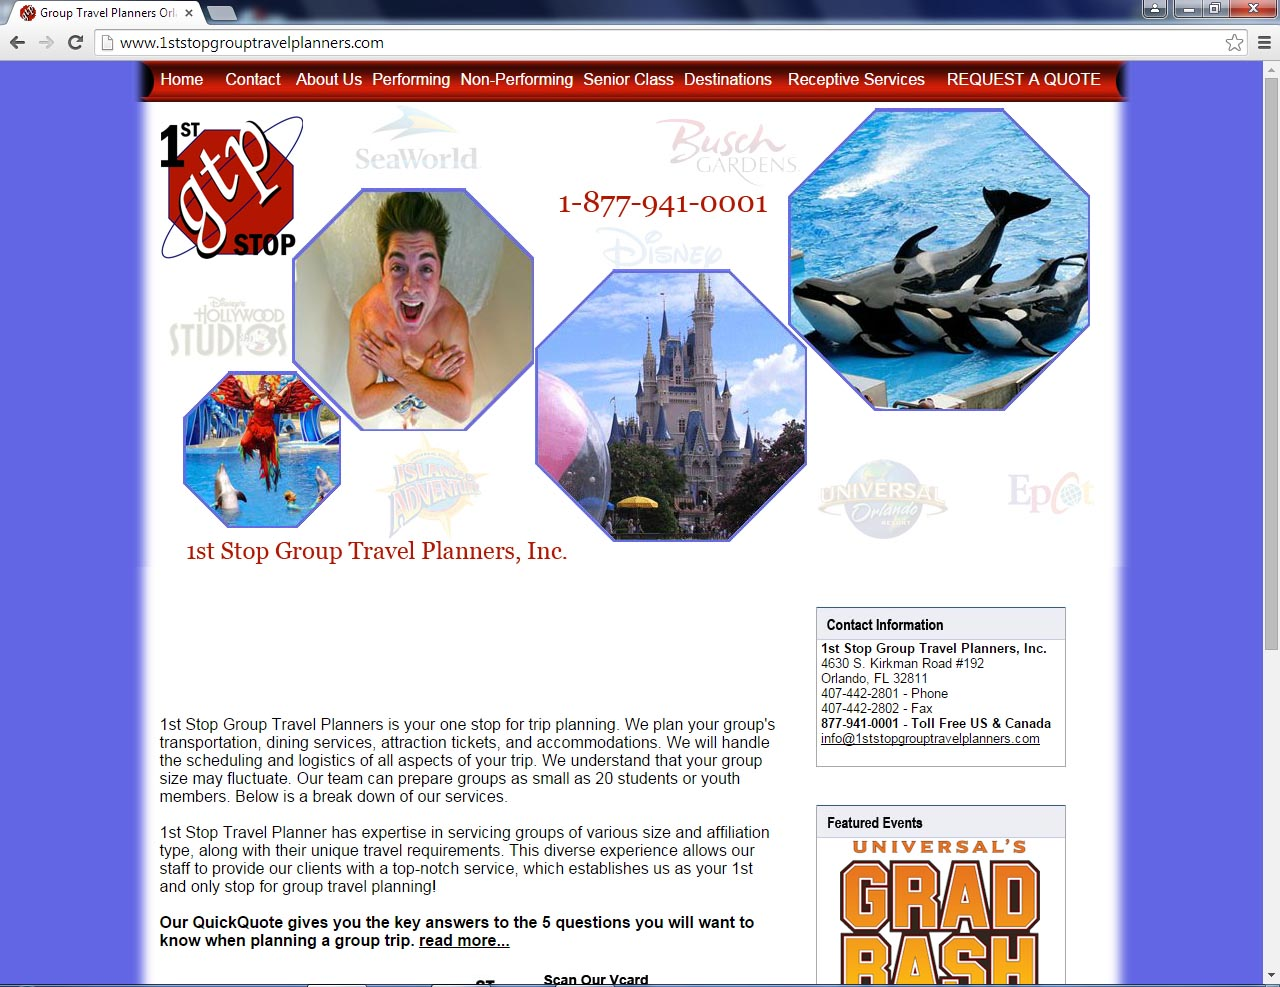 Orlando Website Design Sample 1